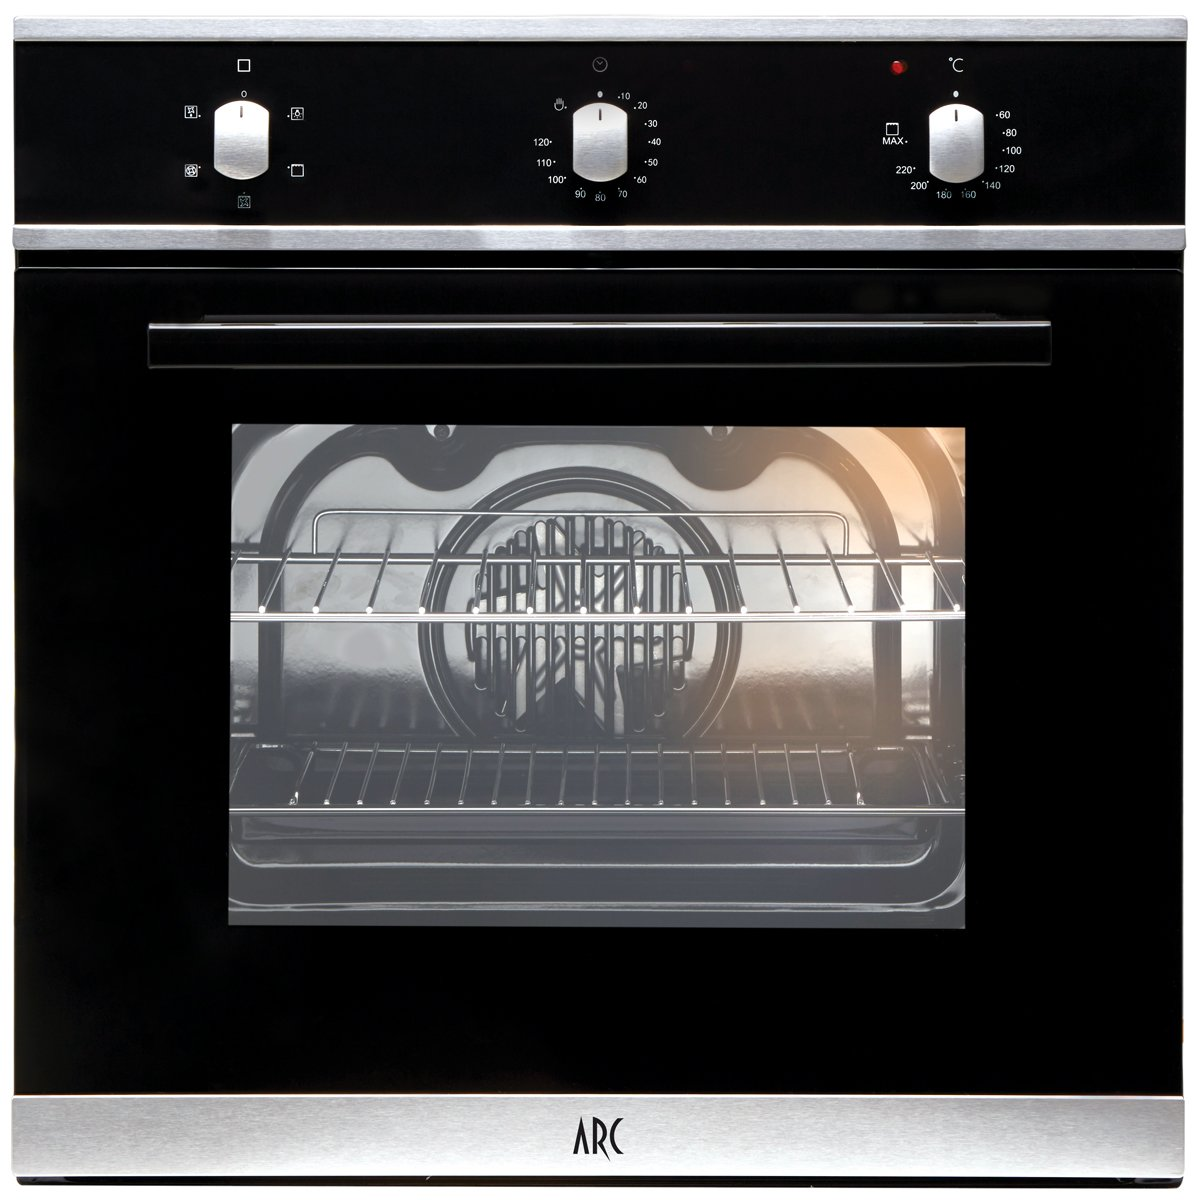 arc ar5s 60cm electric builtin oven appliances online - Electric Wall Oven